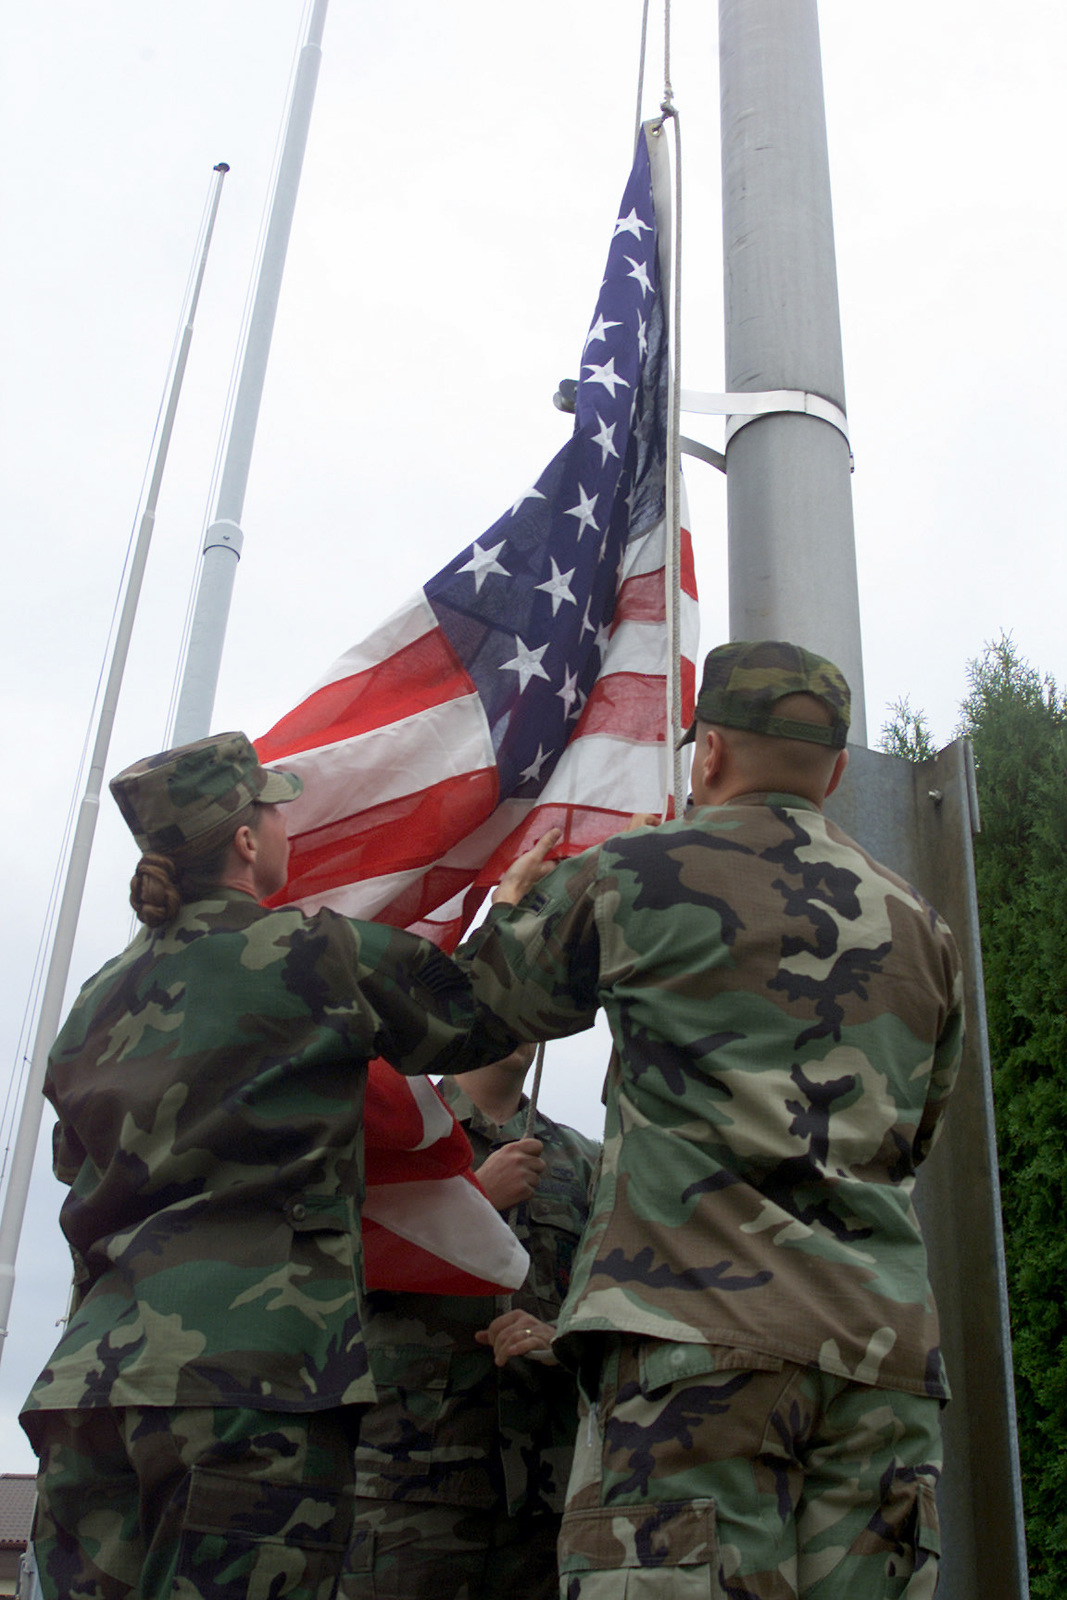 US Air Force (USAF) Honor guard members with the 52nd Fighter Wing (FW), lower the American Flag during Spangdahlem's Remembrance Ceremony on Patriots Day, at Spangdahlem Air Base (AB), Germany